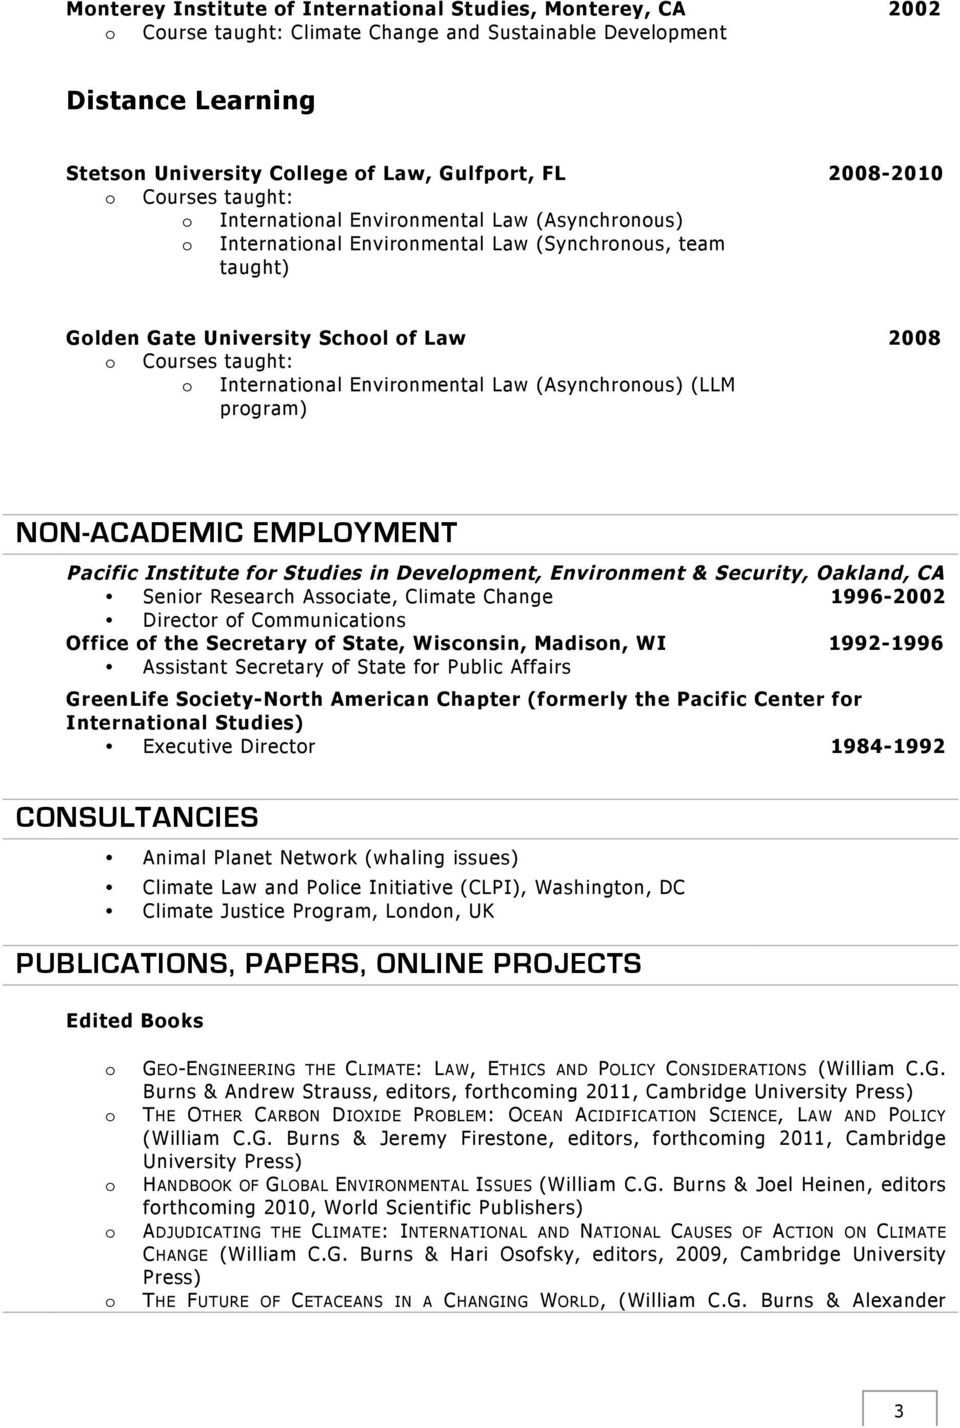 (LLM prgram) 2008 NON-ACADEMIC EMPLOYMENT Pacific Institute fr Studies in Develpment, Envirnment & Security, Oakland, CA Senir Research Assciate, Climate Change 1996-2002 Directr f Cmmunicatins